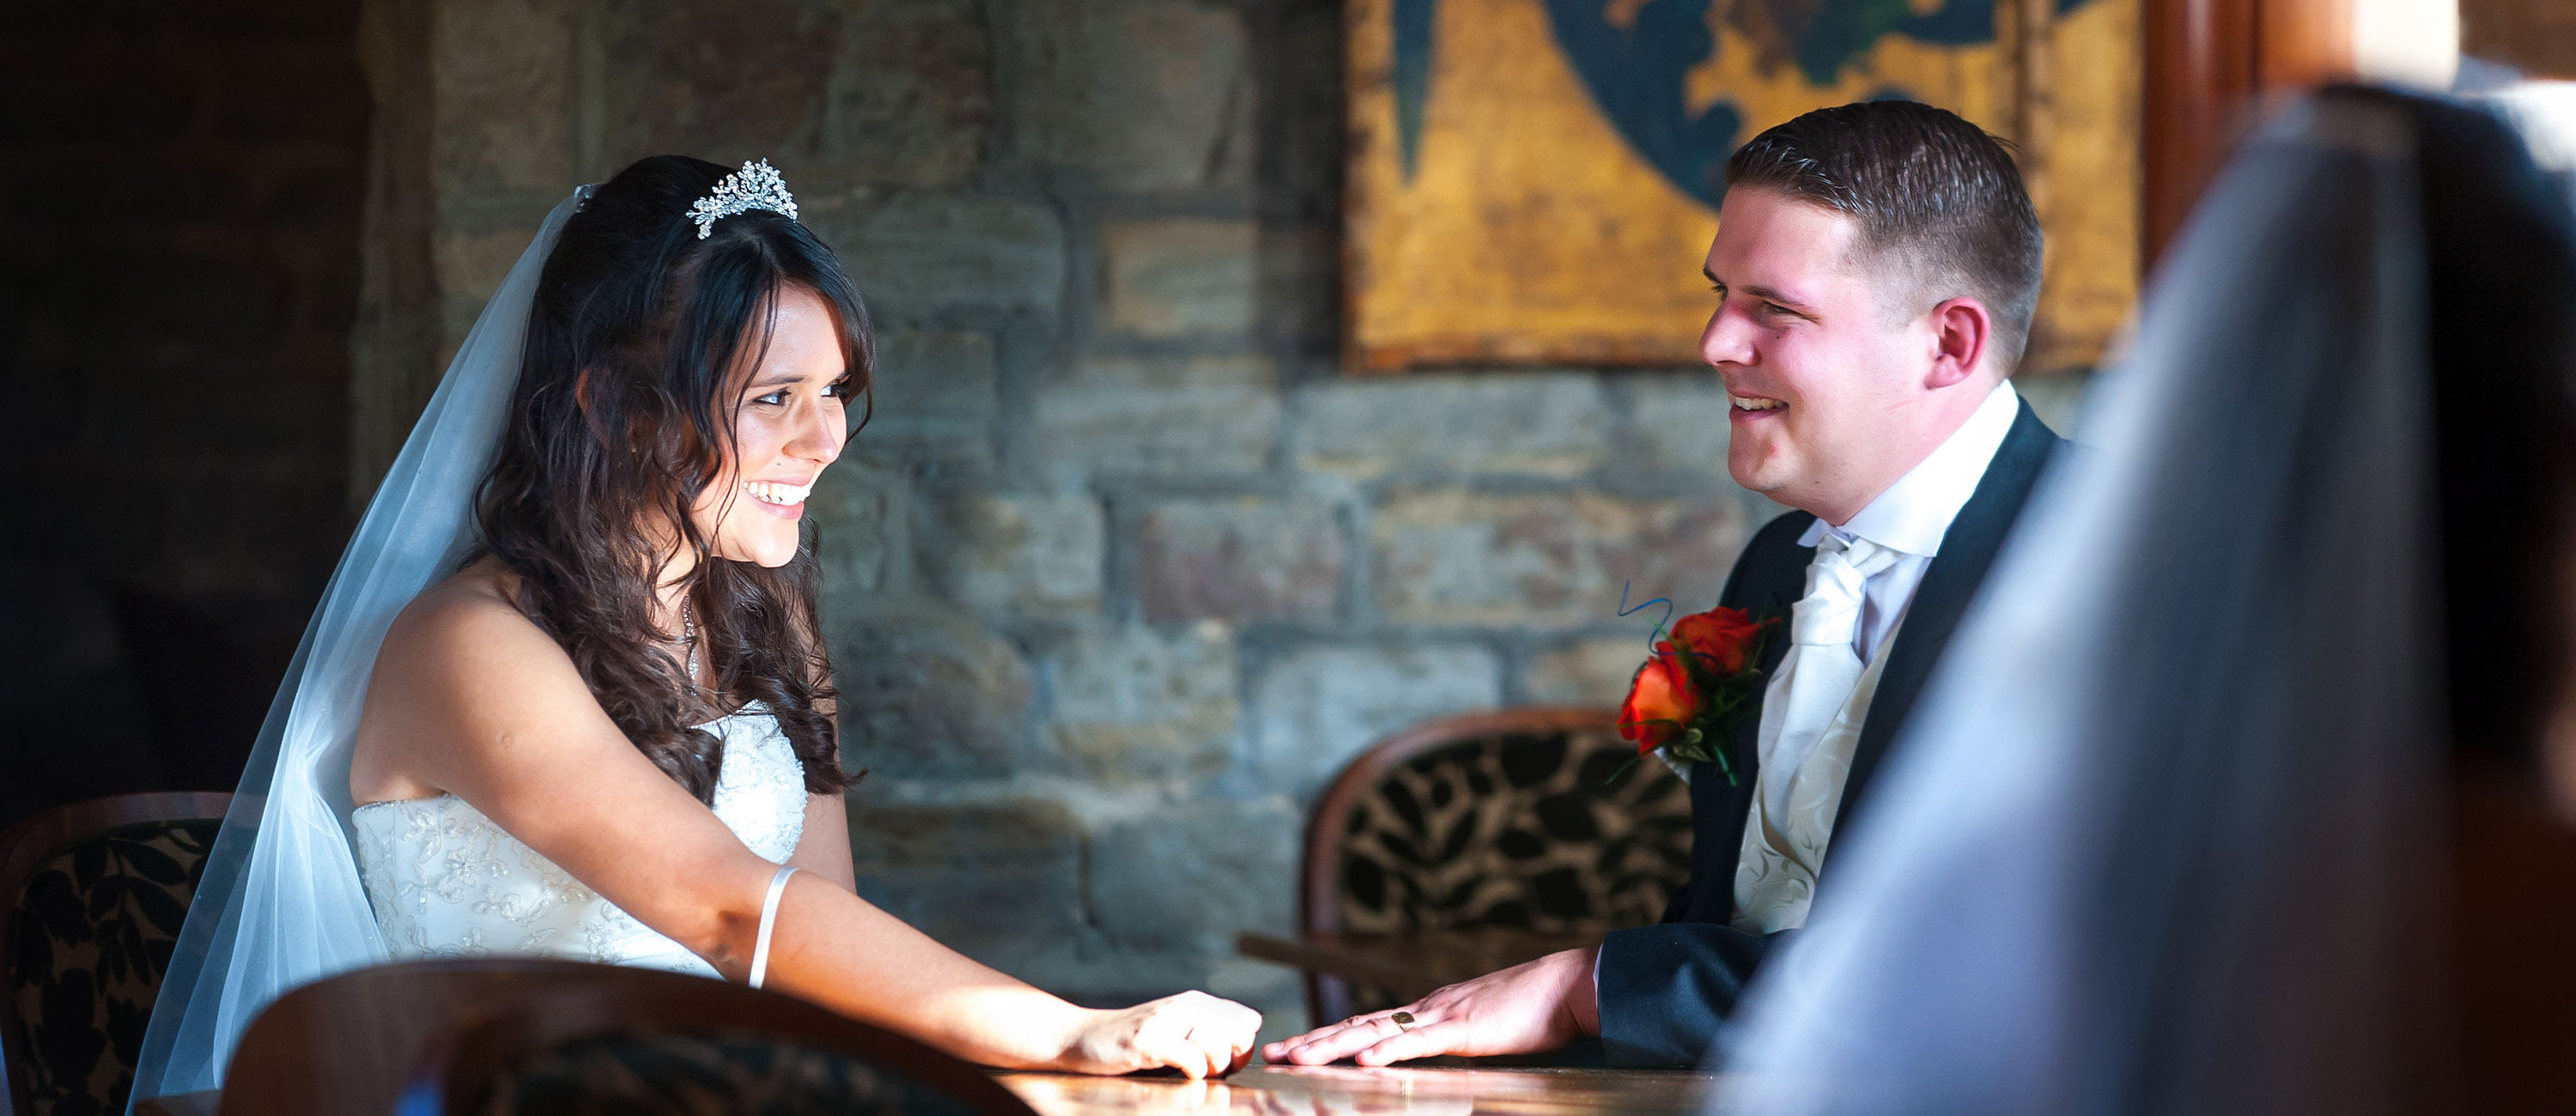 recommended wedding photographer swan hotel